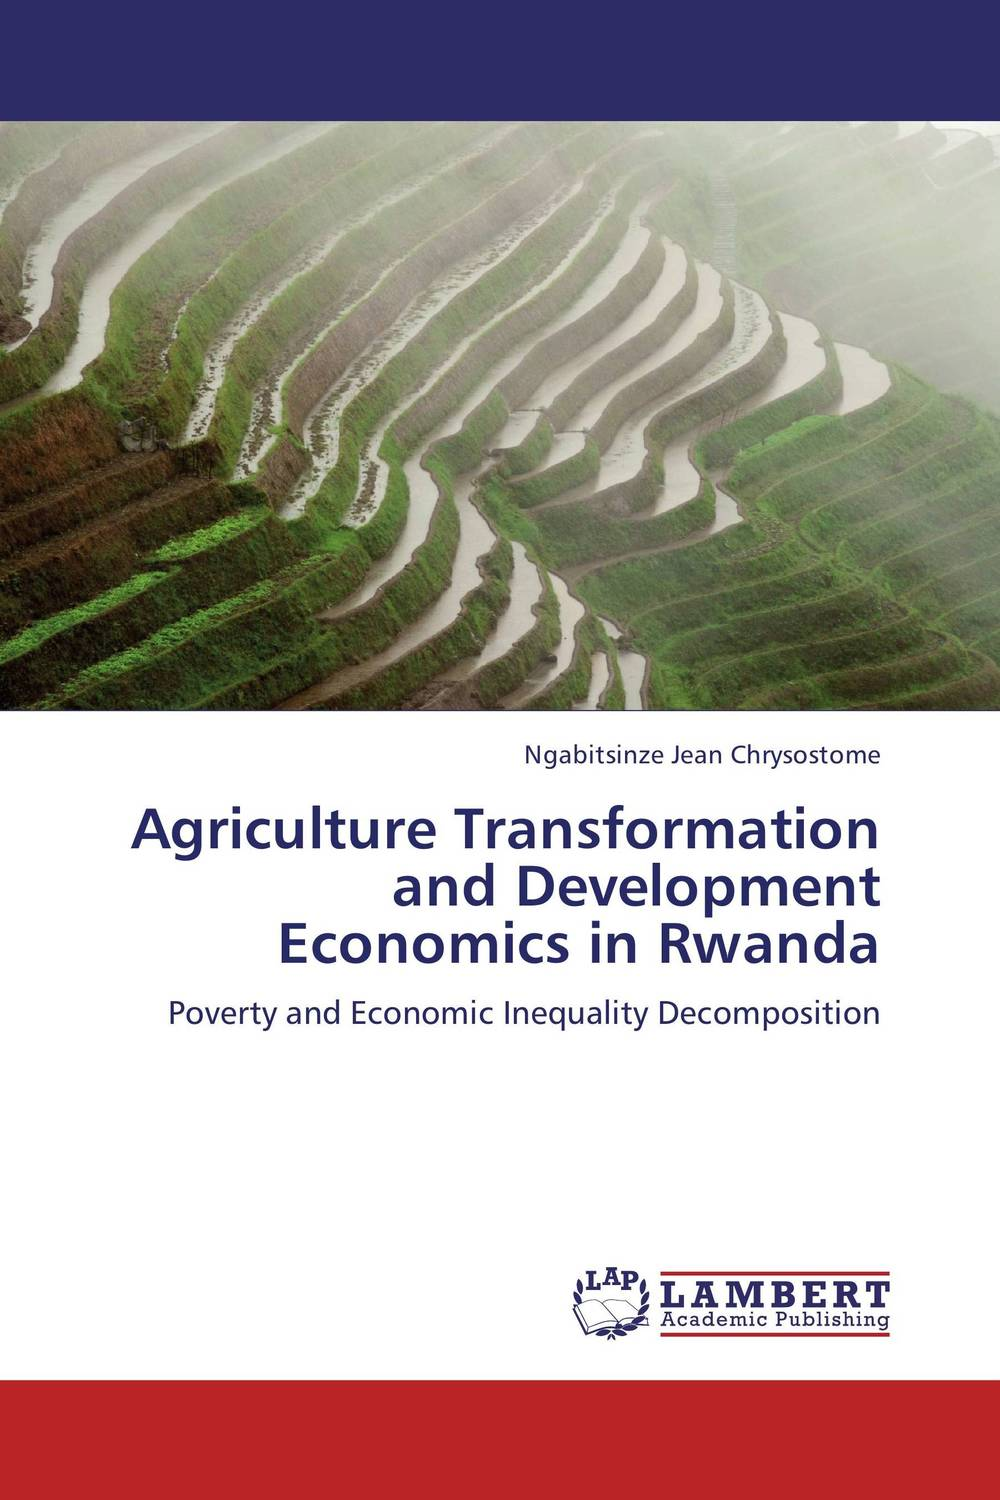 Agriculture Transformation and Development Economics in Rwanda viruses cell transformation and cancer 5